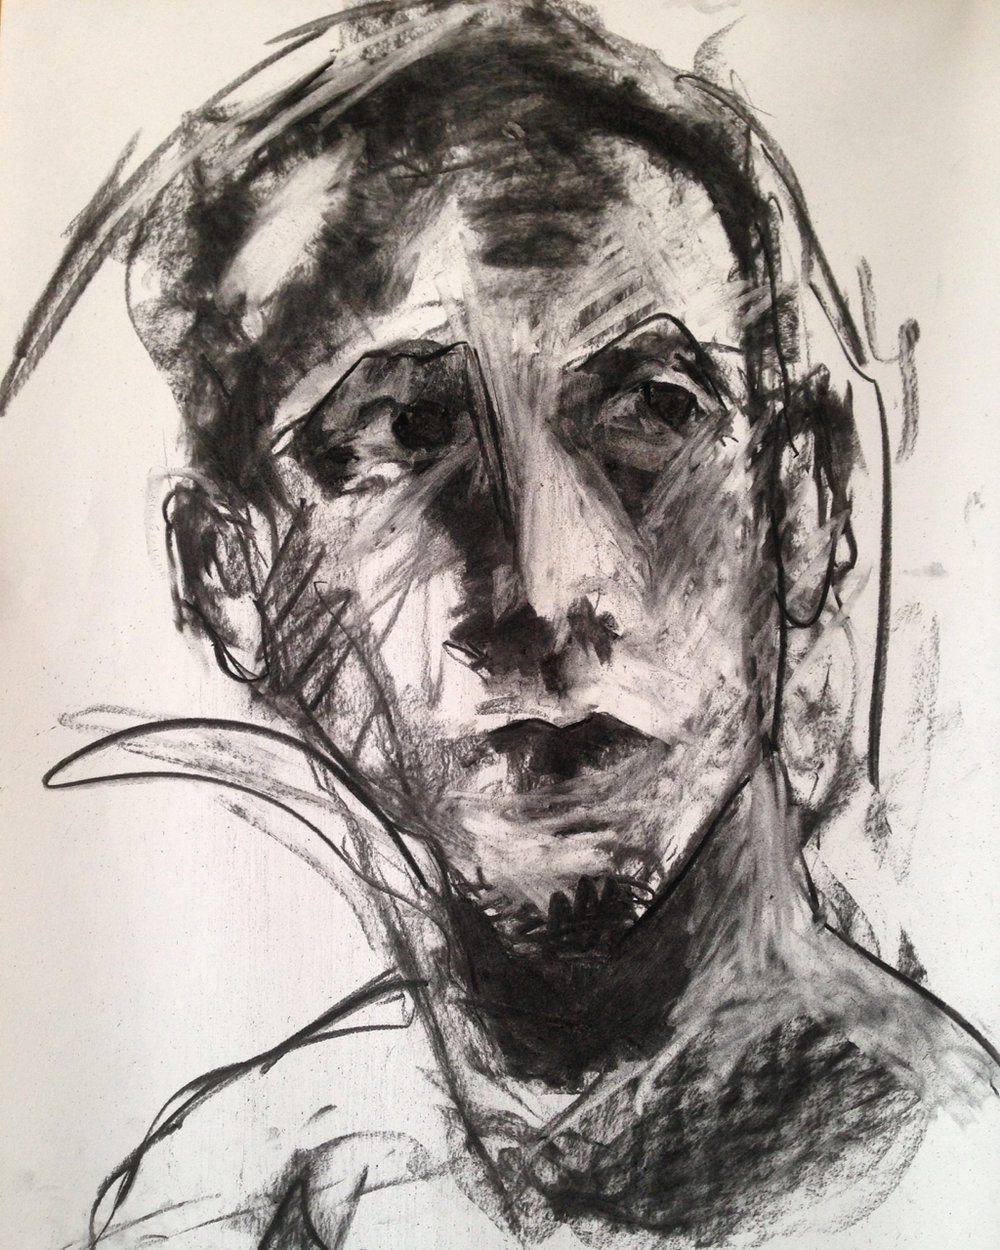 Five minute dynamic sketch, charcoal on paper